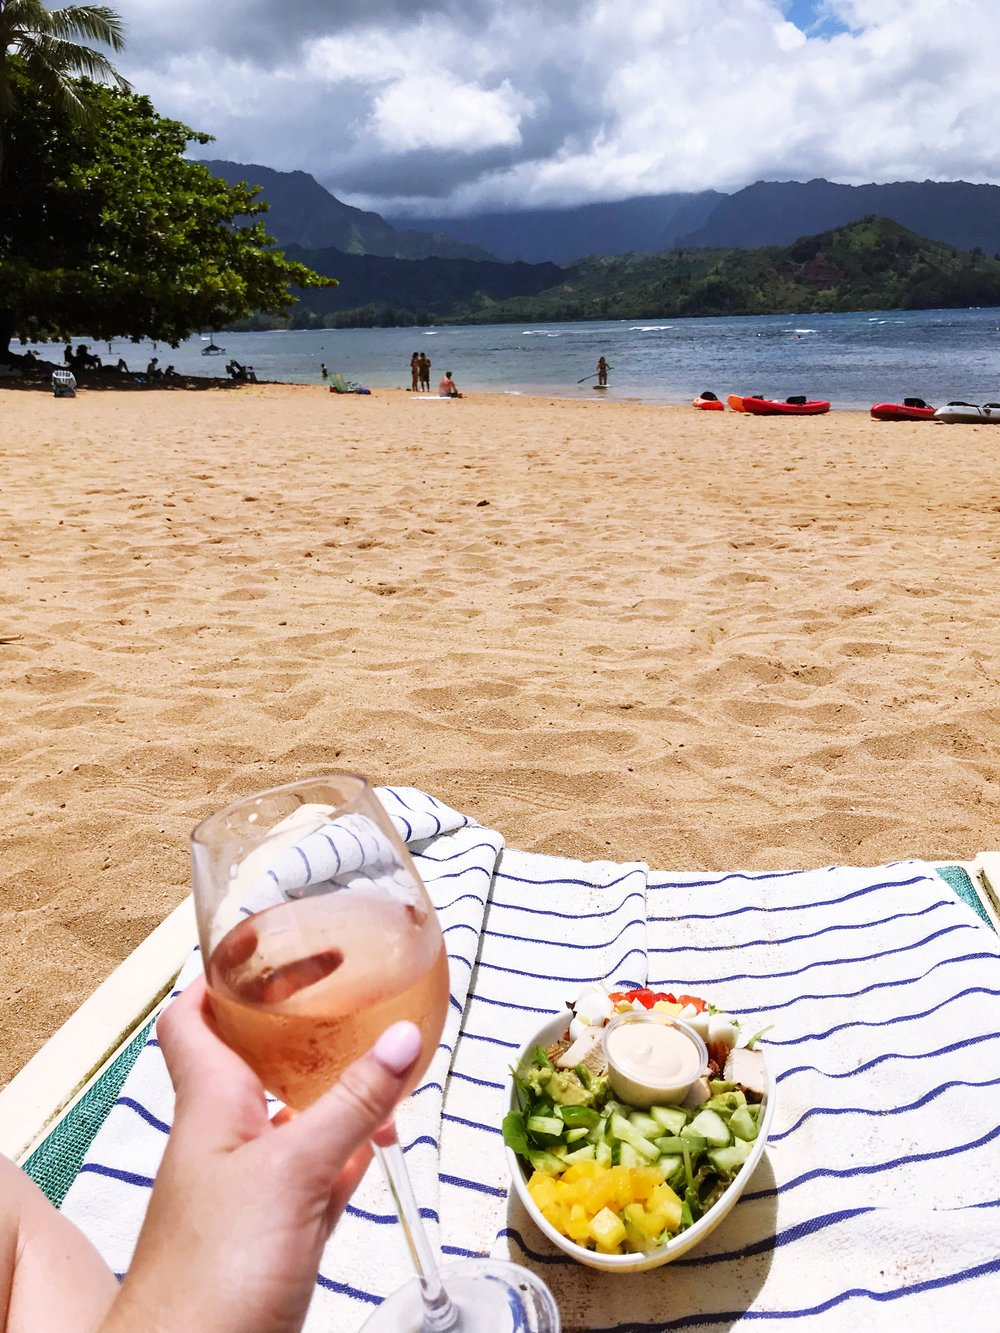 At lunch I switched to wine, which is the way to go here if you want to get your vacation buzz on :)